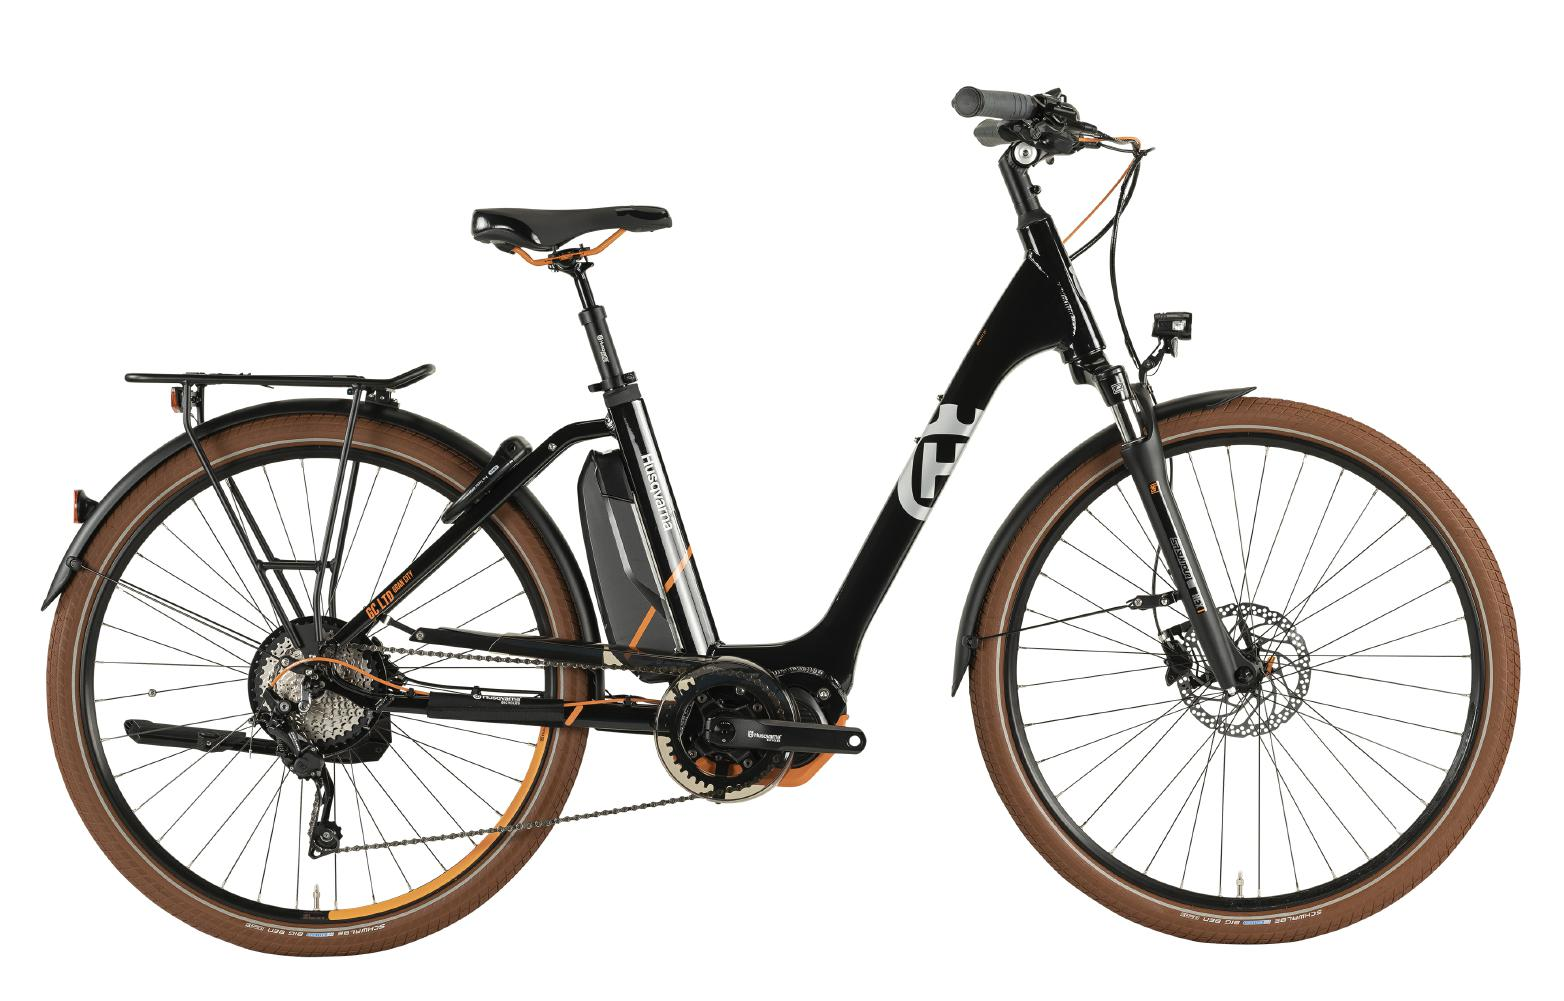 Husqvarna 2019 Gran City Anniversary Model GC LTD - black